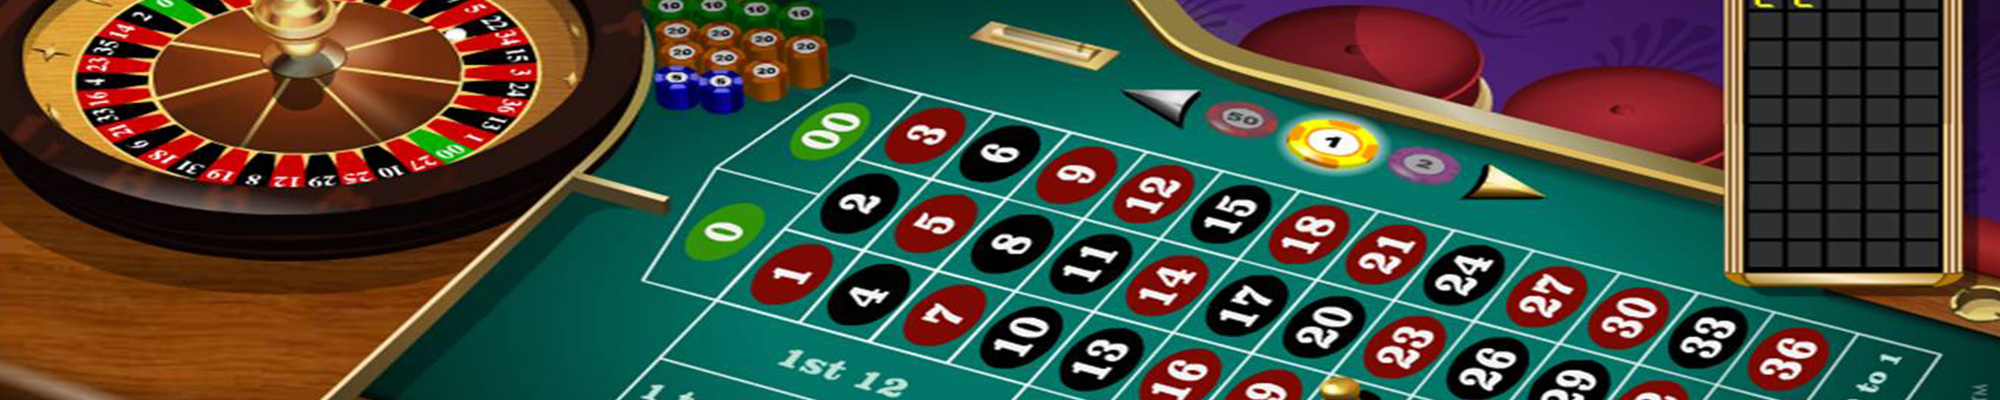 Advantages to playing online roulette